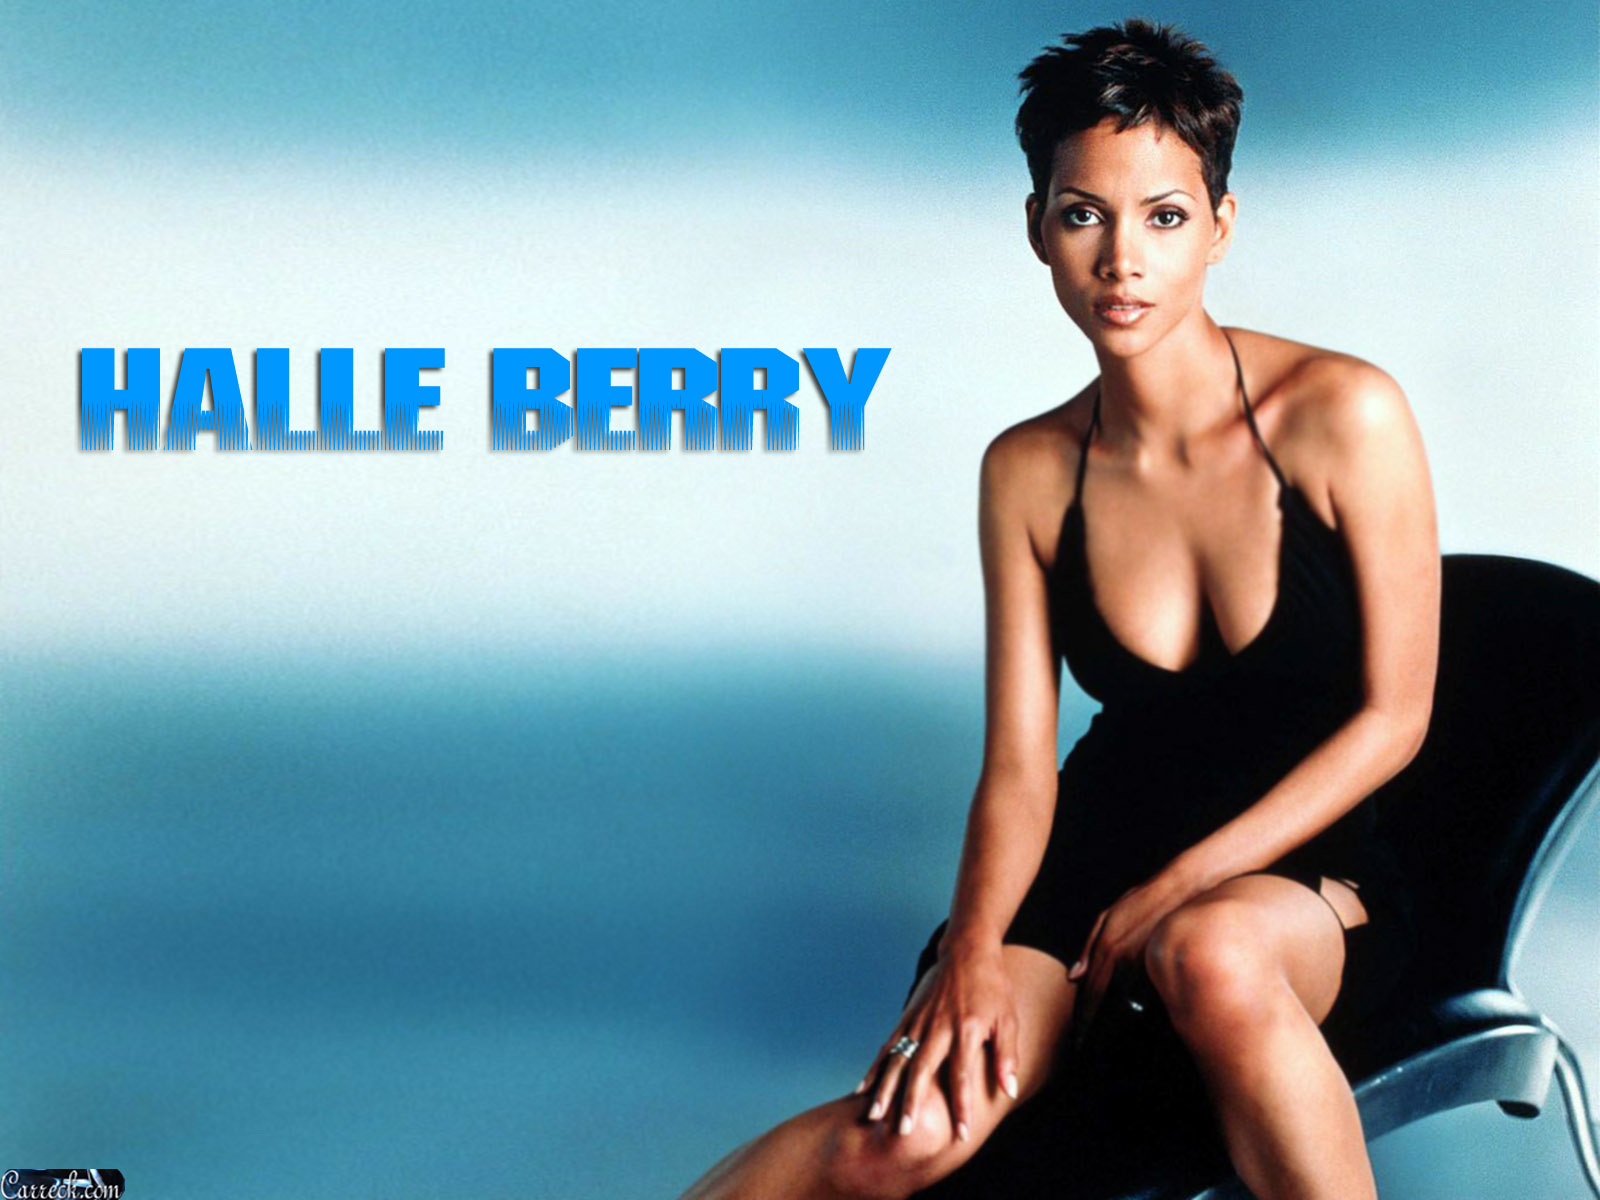 Halle Berry images Halle Berry HD wallpaper and background photos ... Halle Berry